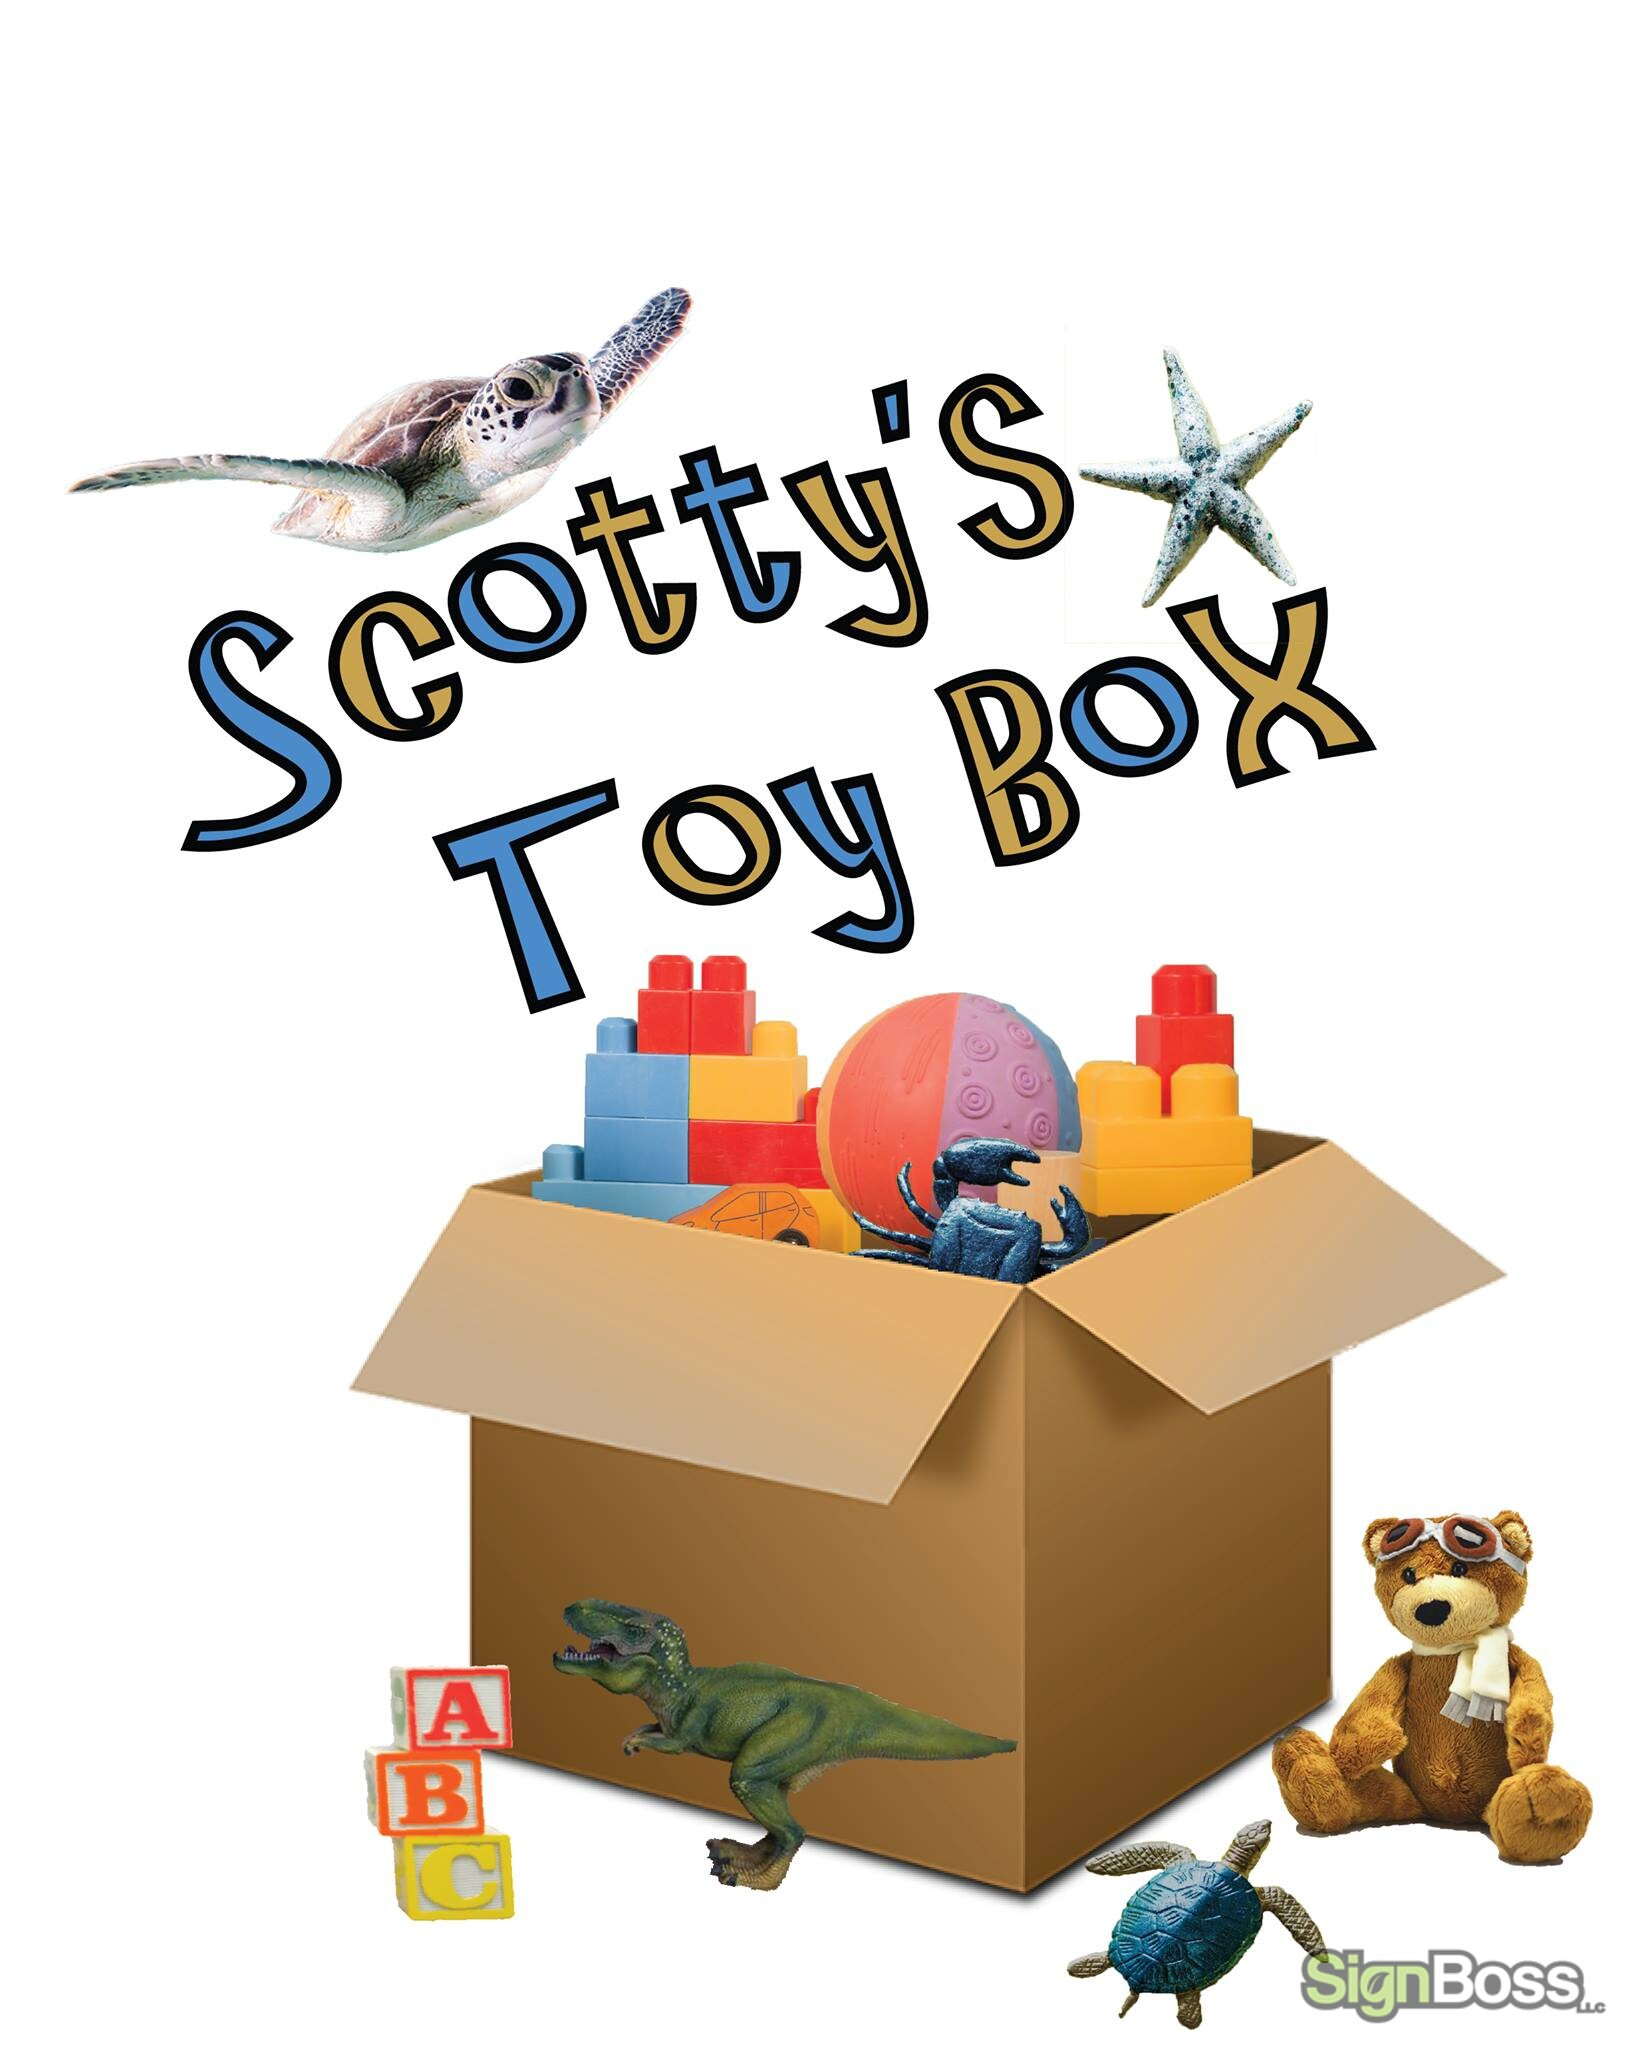 About Scotty's Toy Box Child Care in Gillette WY